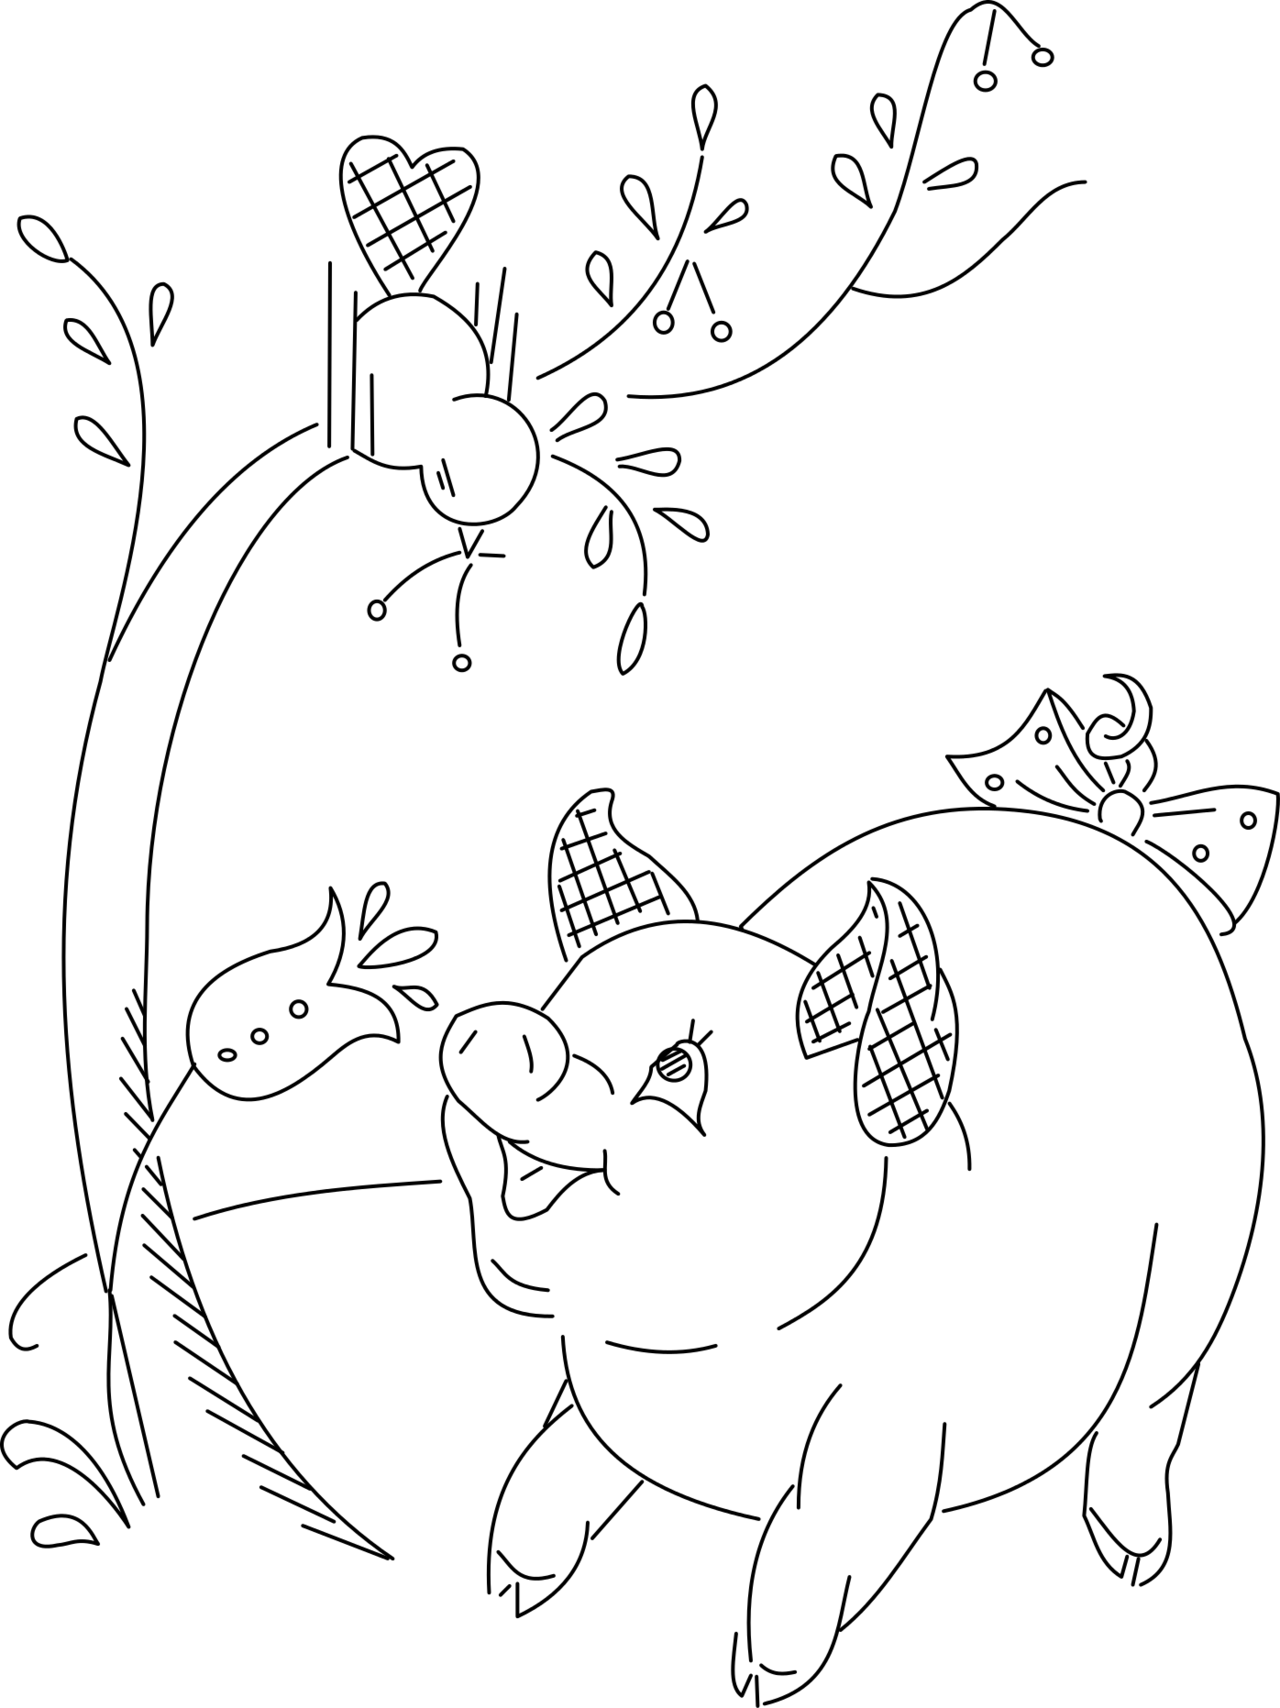 A very cute pig and a bird with some cherries. Adorable